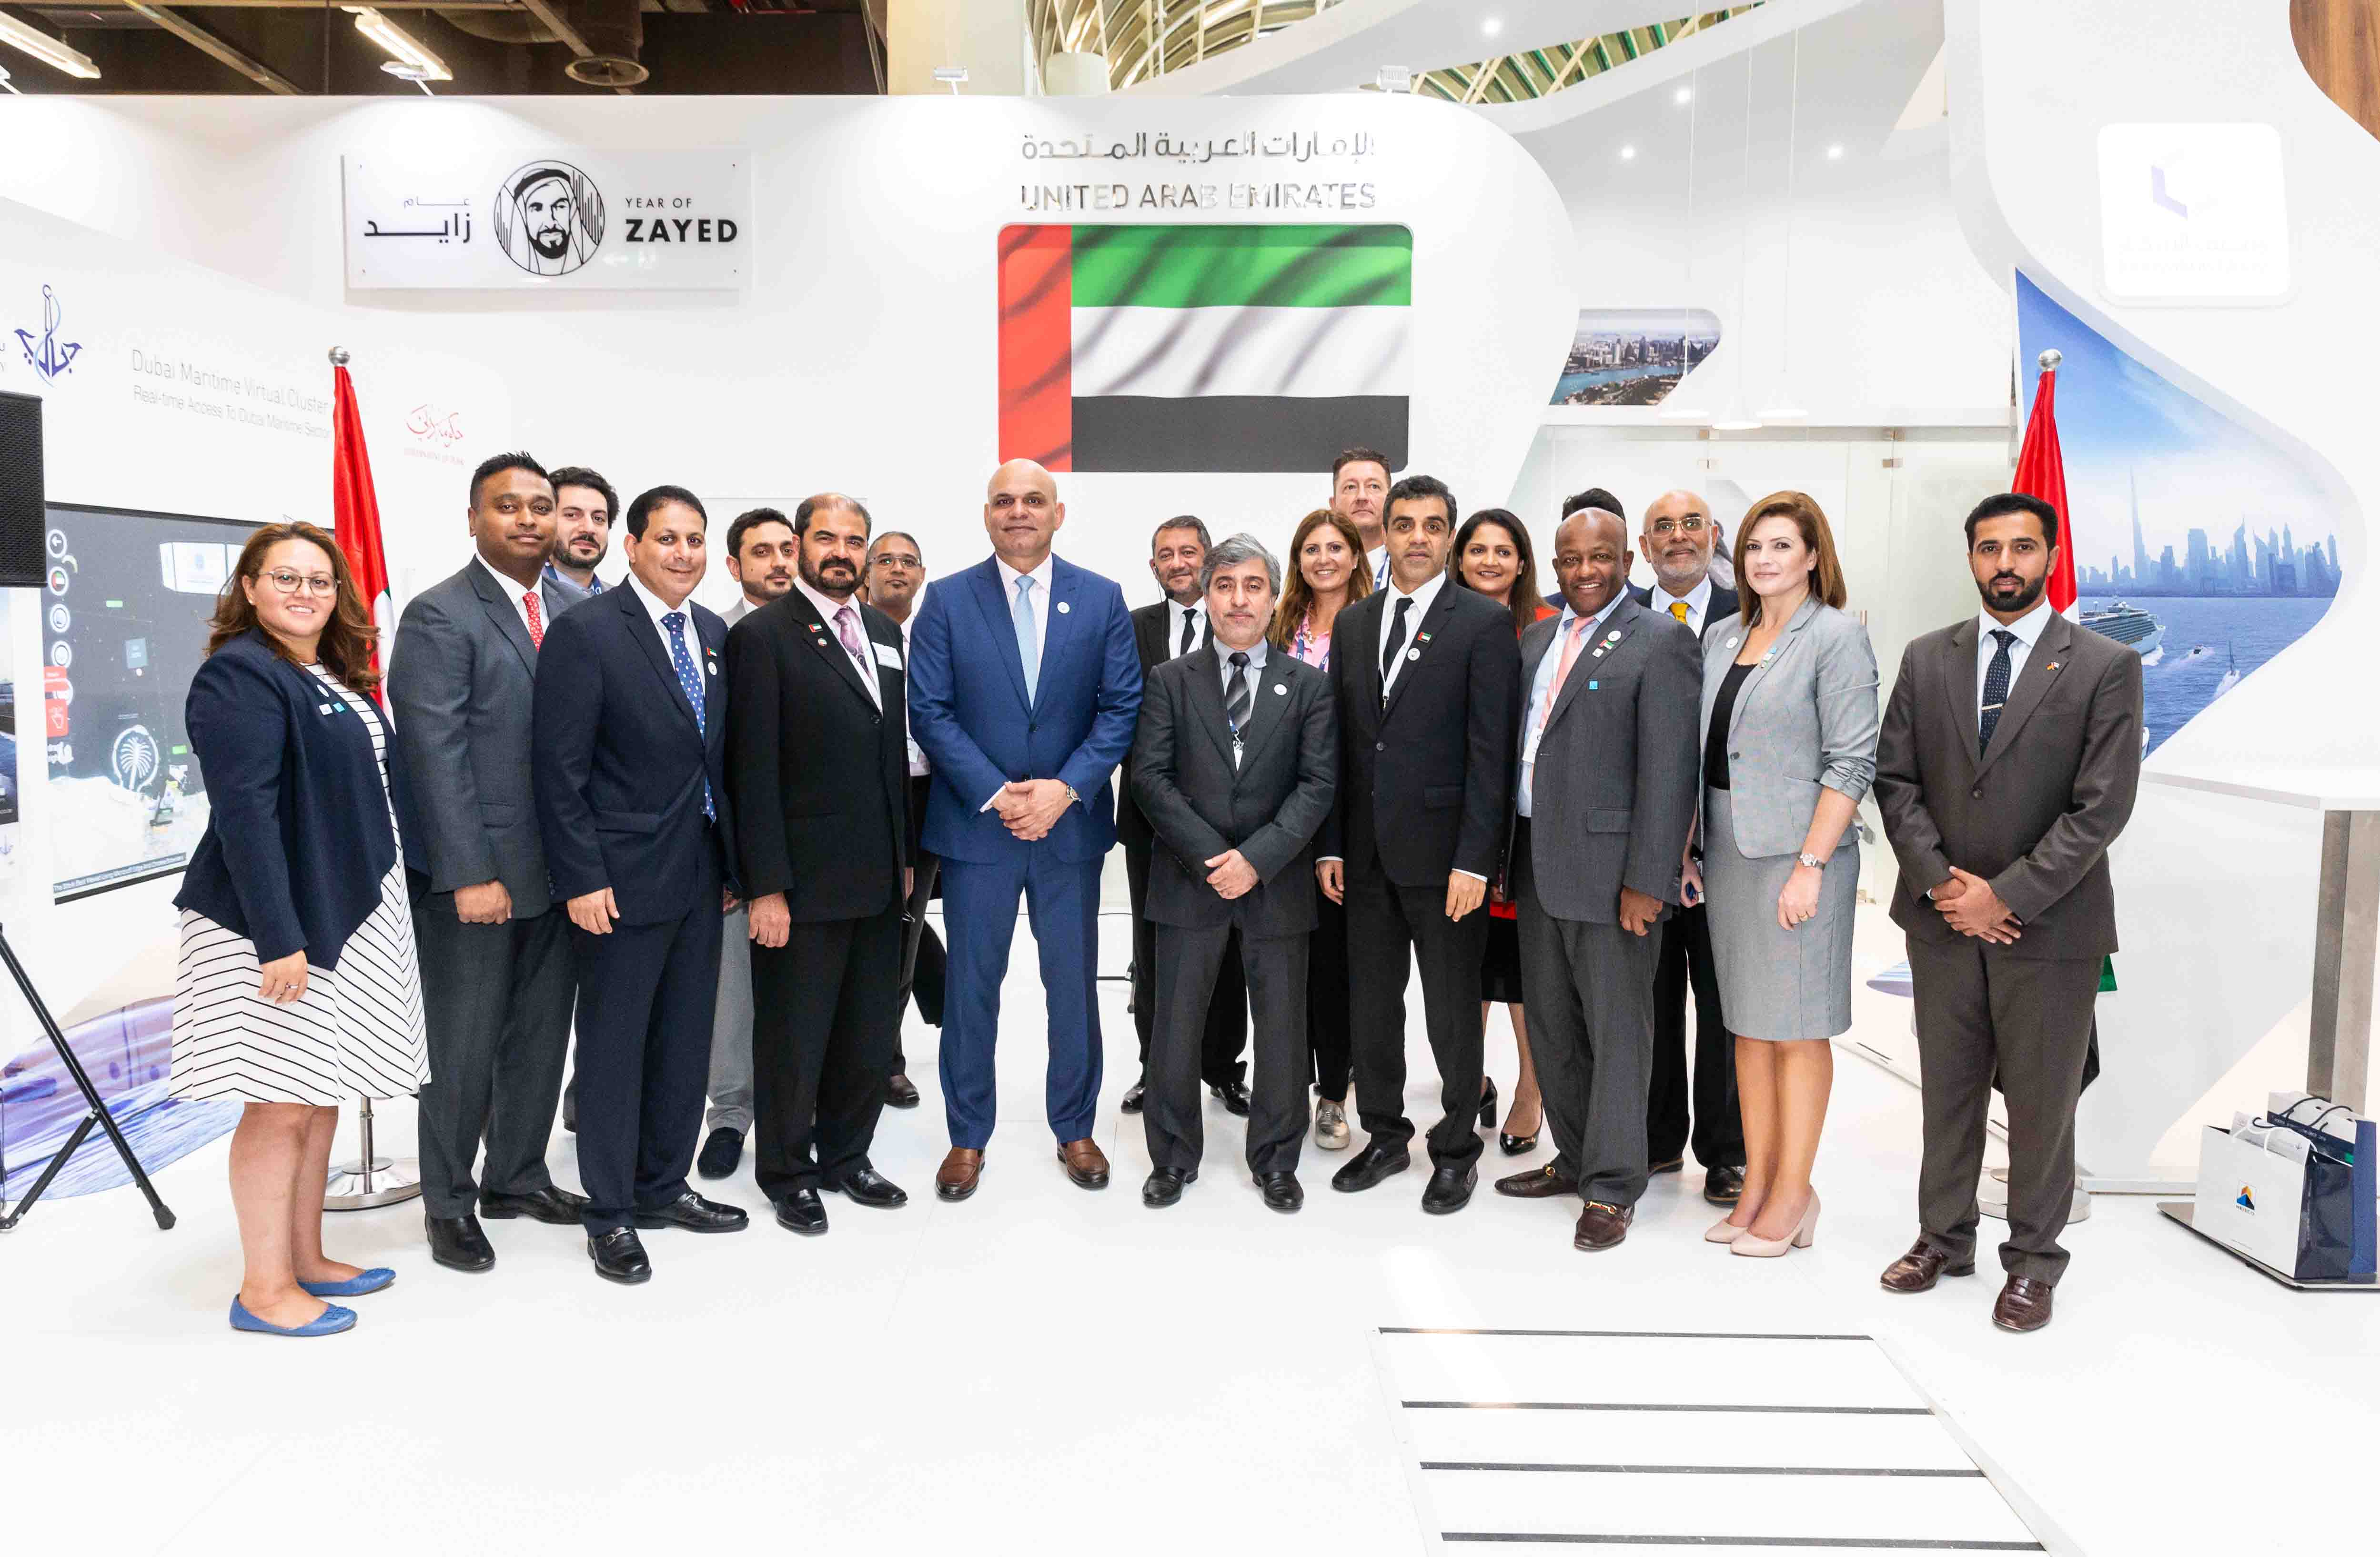 DMCA Showcases Dubai's Competitiveness at SMM 2018 in Germany